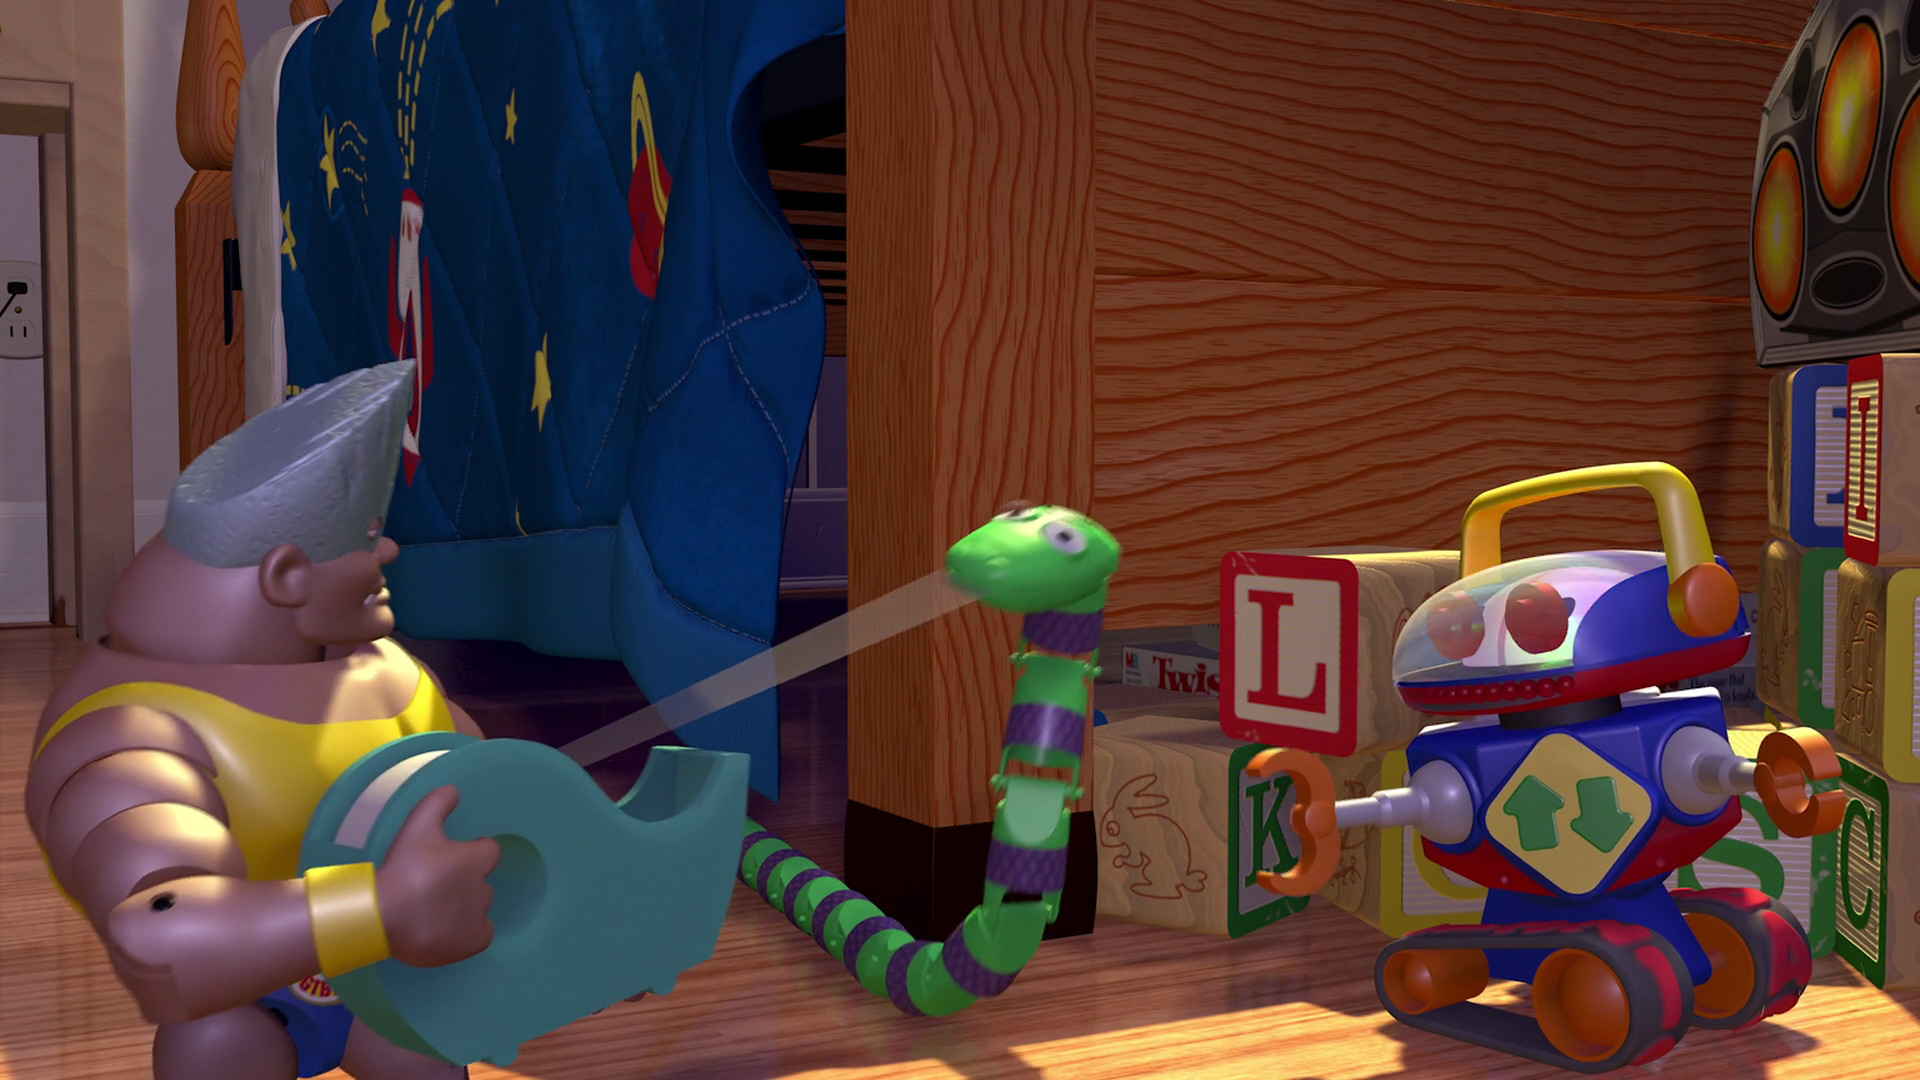 serpent-personnage-toy-story-02